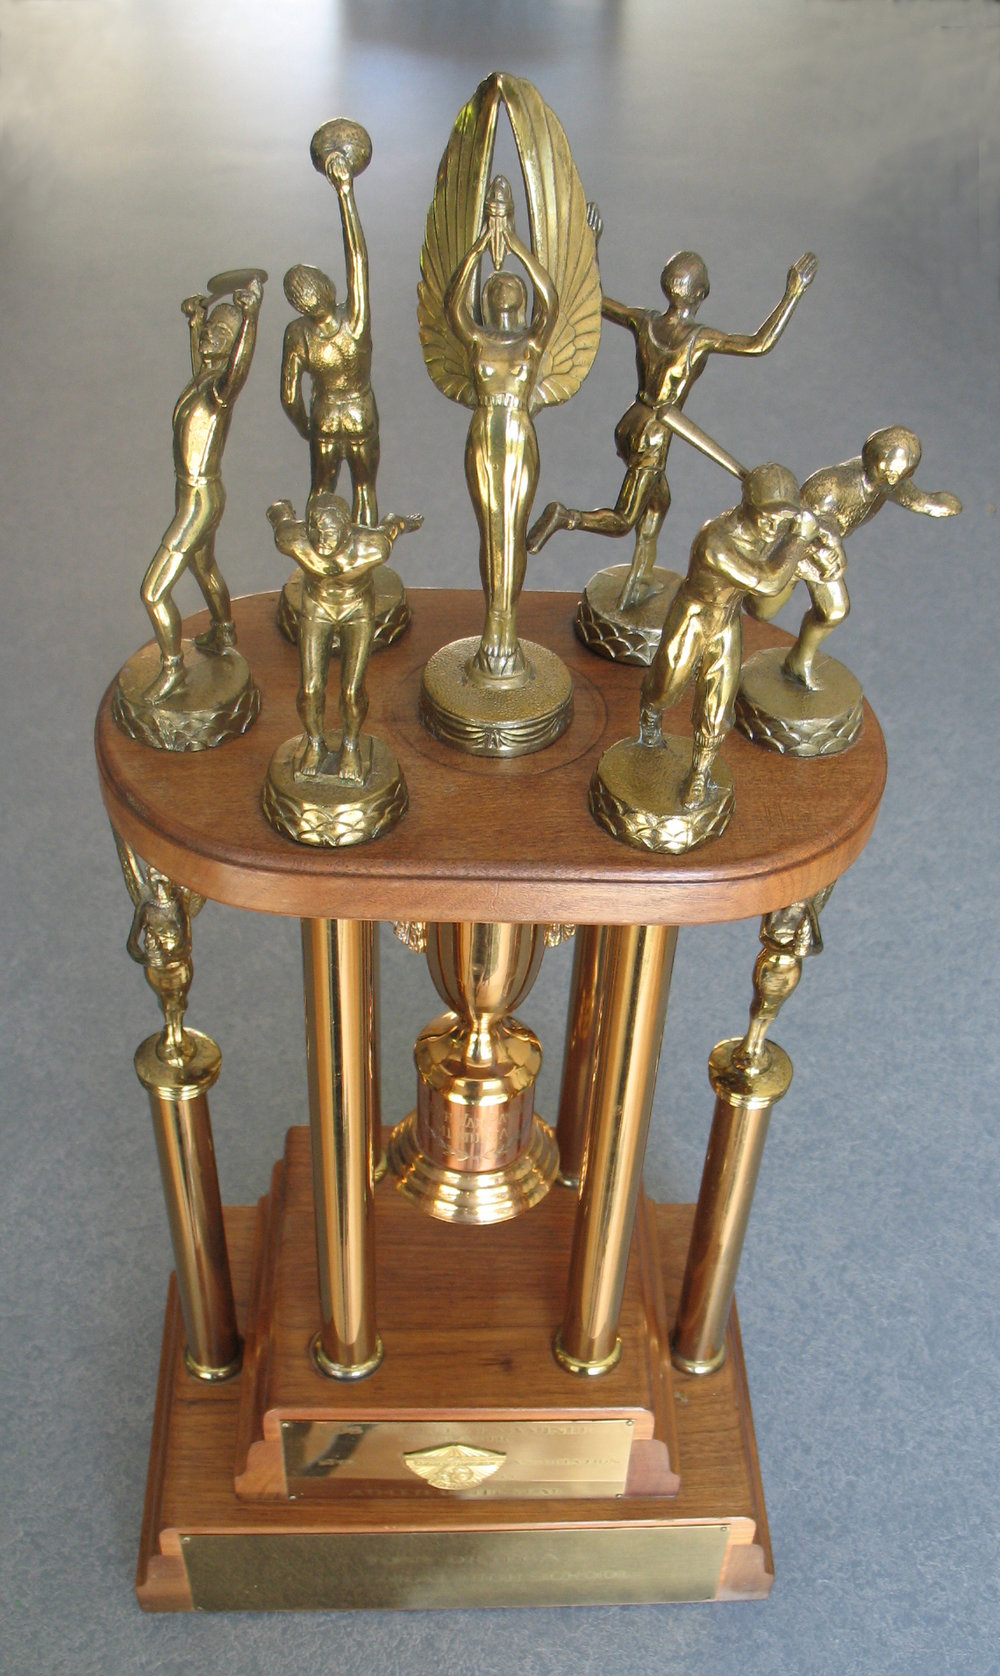 Athletic trophy with athletic figures broken is now repaired.